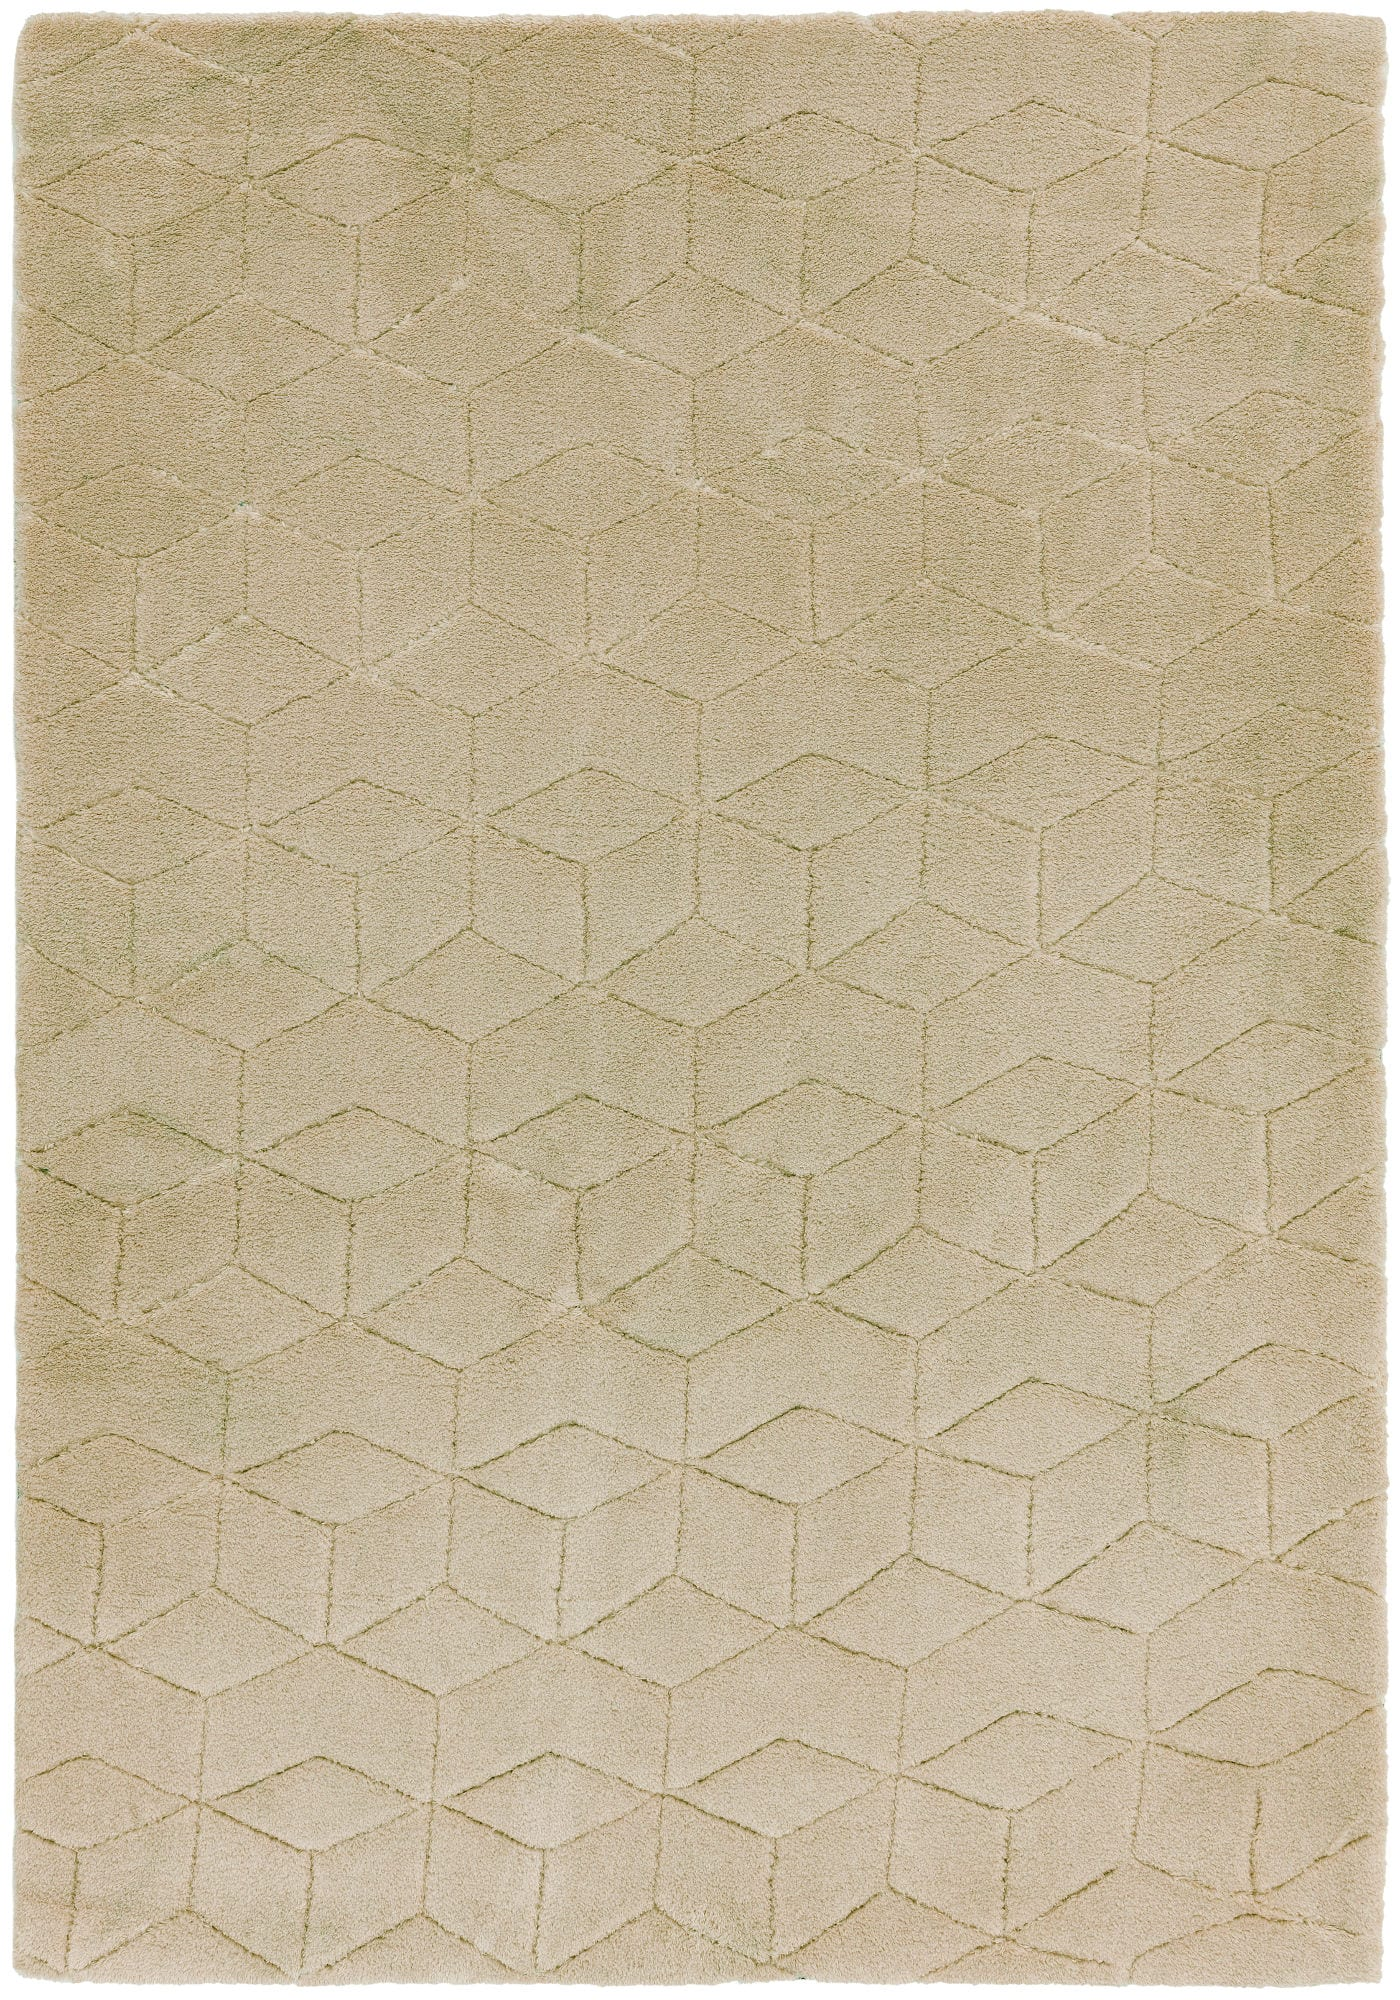 Cozy Rug By Asiatic Carpets Colour Sand Rugs Uk